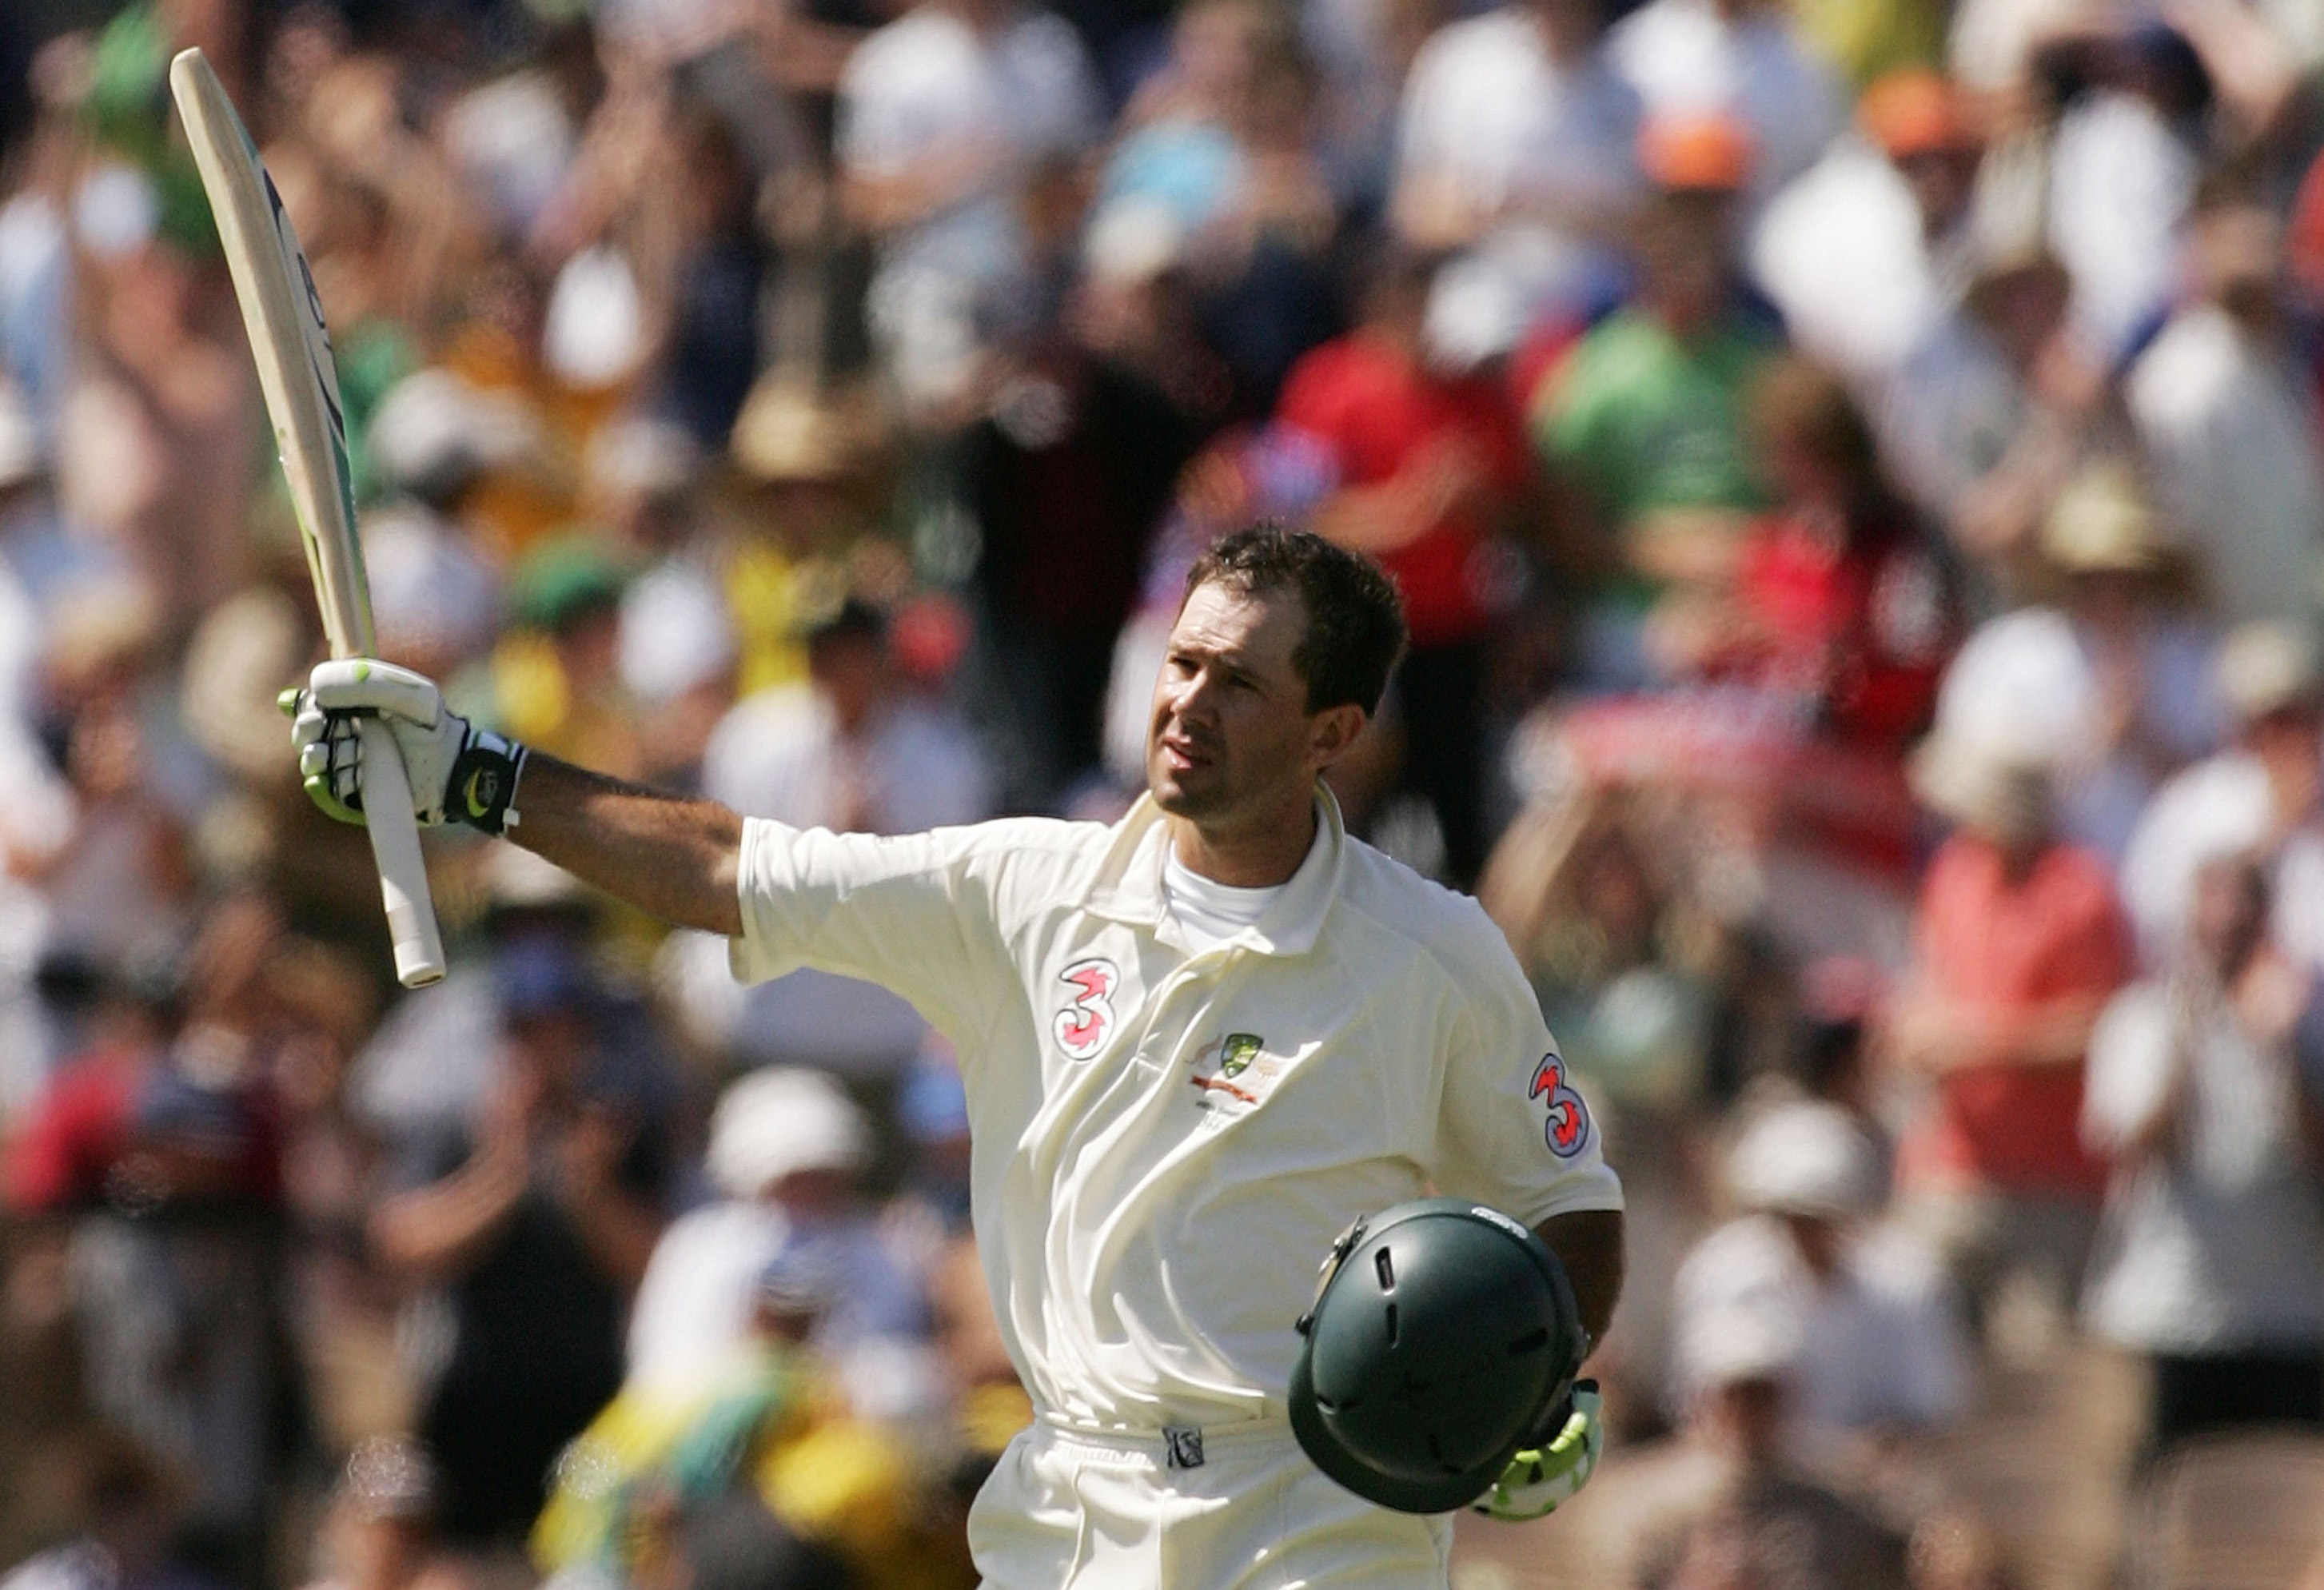 Ricky Ponting acknowledges the crowd after his century in Adelaide in the 2006-07 series // Getty